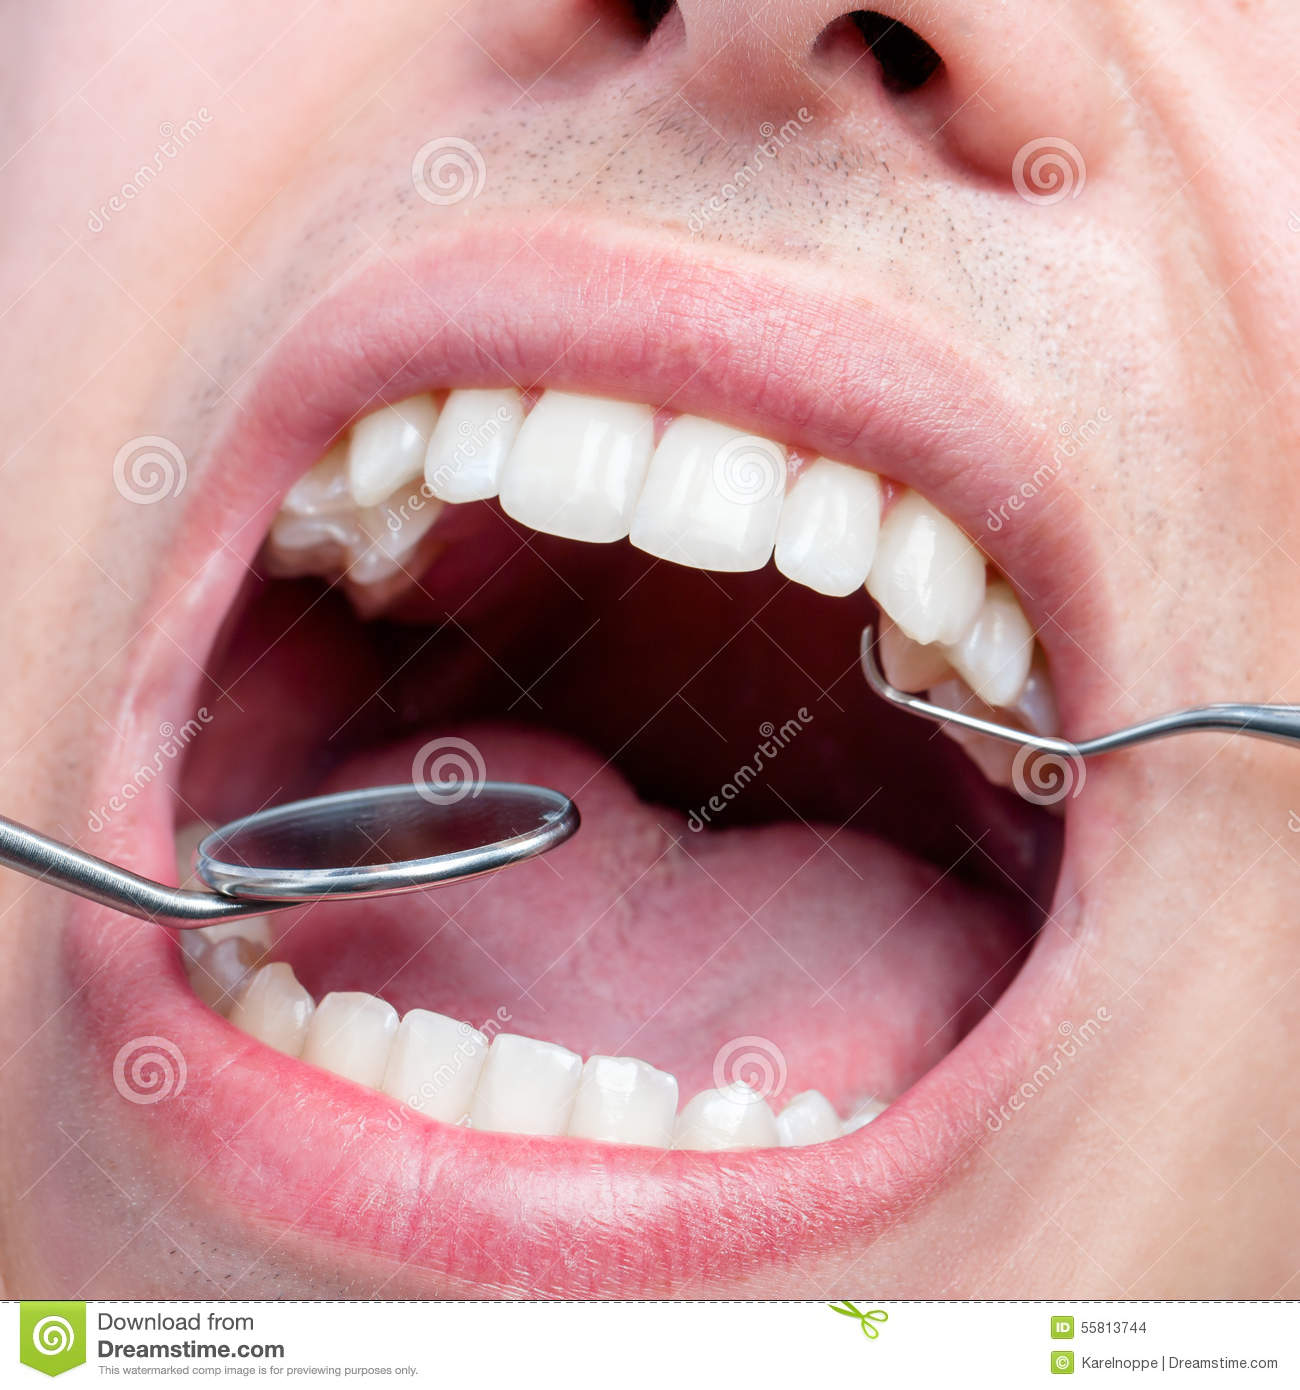 Human Male Mouth Showing Teeth With Dental Hatchet And ...